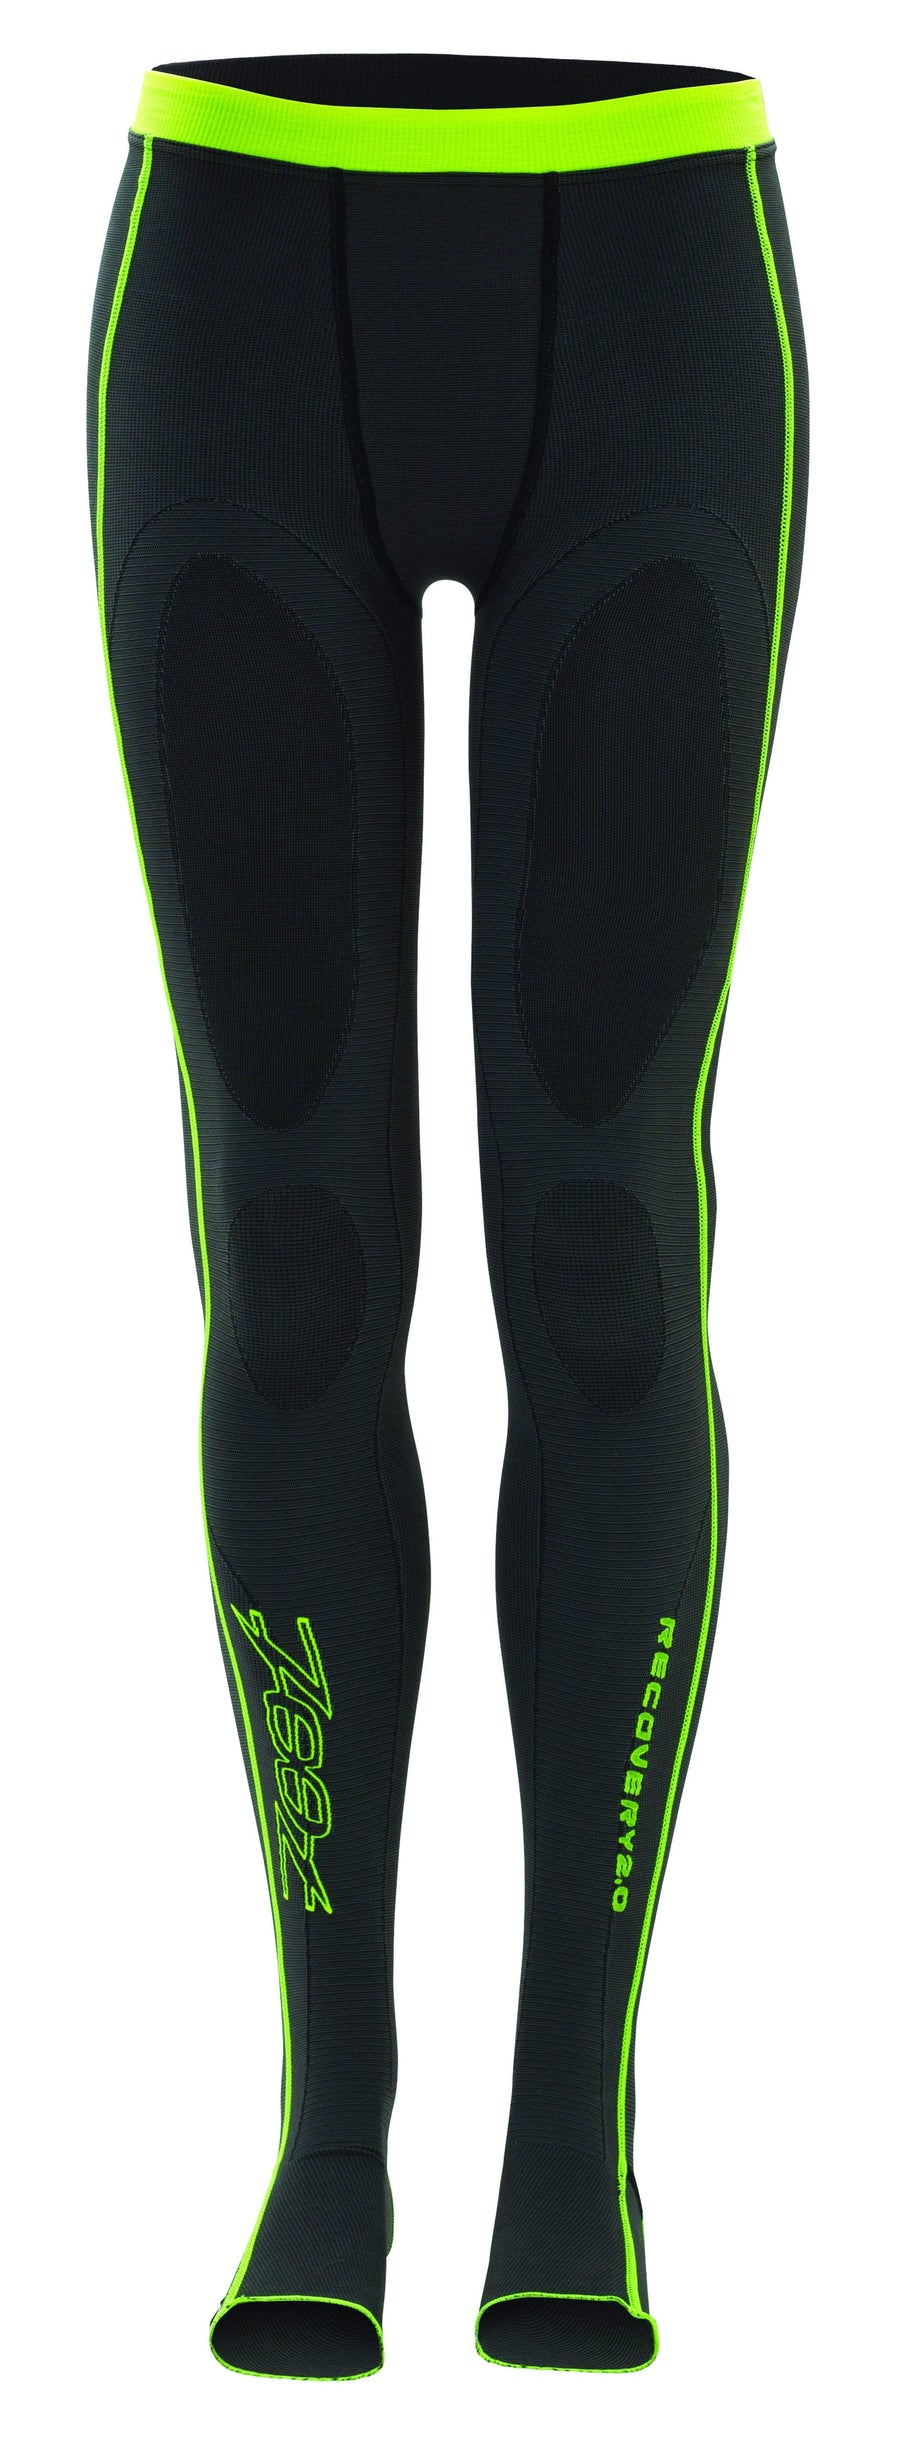 Zoot Sports COMPRESSION MENS ULTRA 2.0 CRX TIGHT - BLACK SAFETY YELLOW